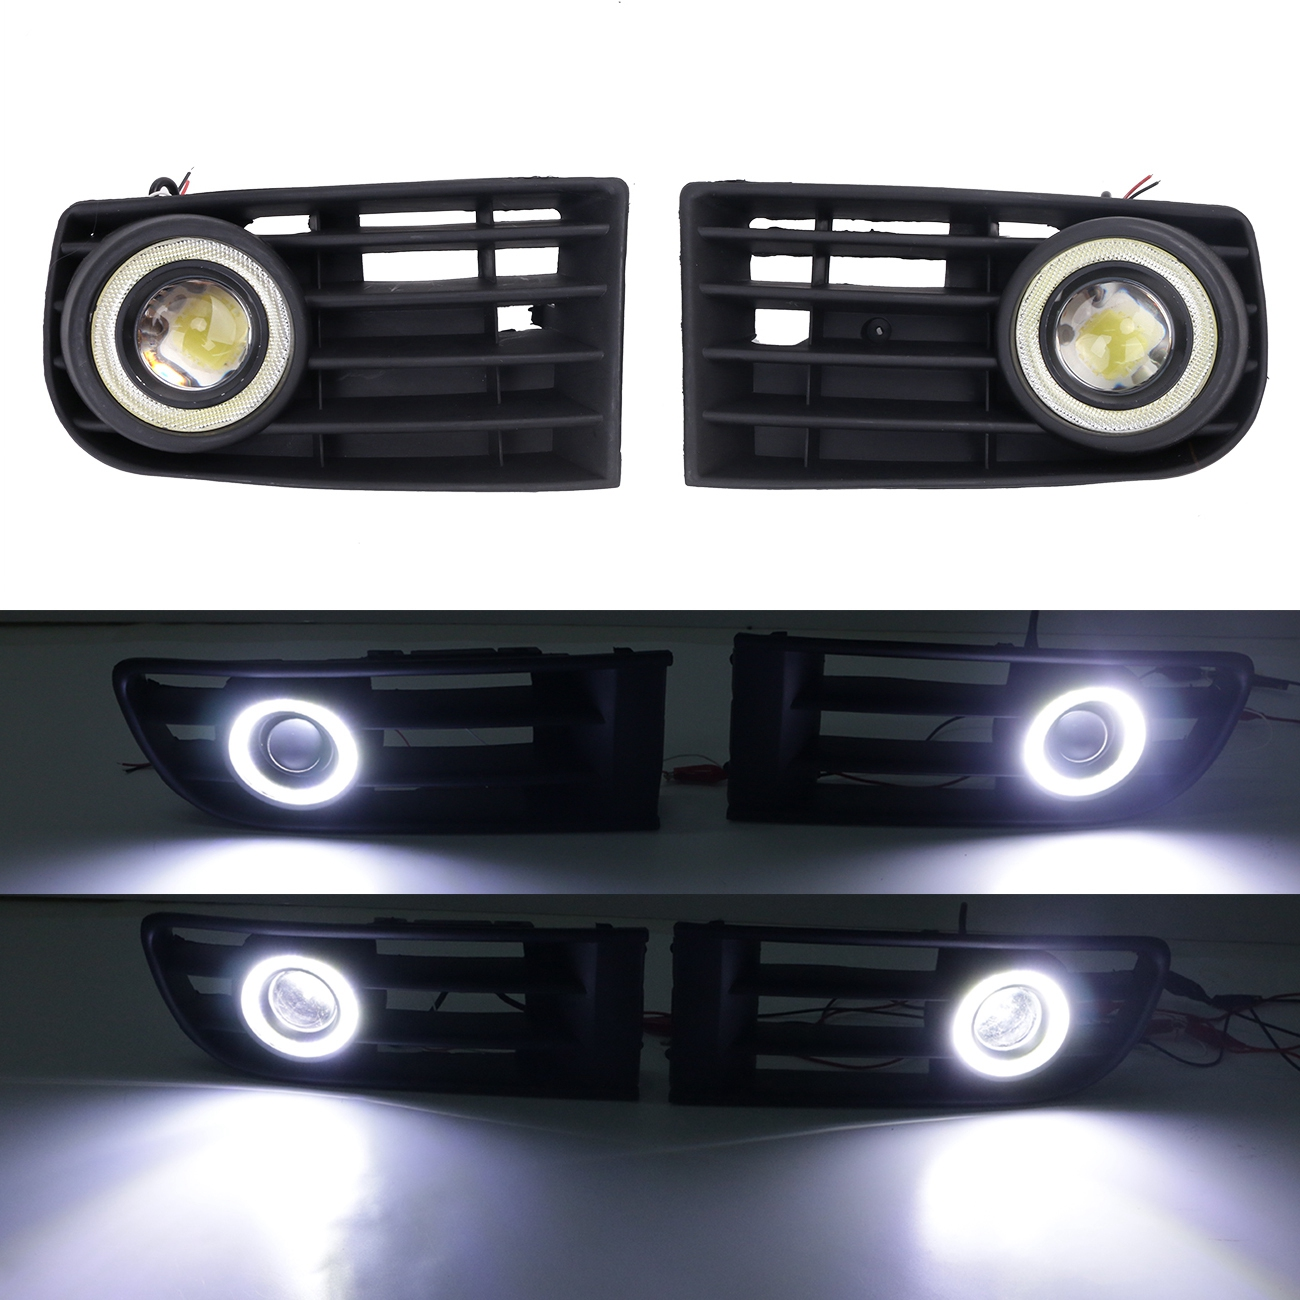 LED Fog Lights Lamp DRL Angel Eyes Front Bumper Grille Kit For VW Golf GL GLS GTI TDI Mk5 Rabbit 2003 - 2009 #P363 front bumper fog lamp grille led convex lens fog light angel eyes for vw polo 2001 2002 2003 2004 2005 drl car accessory p364